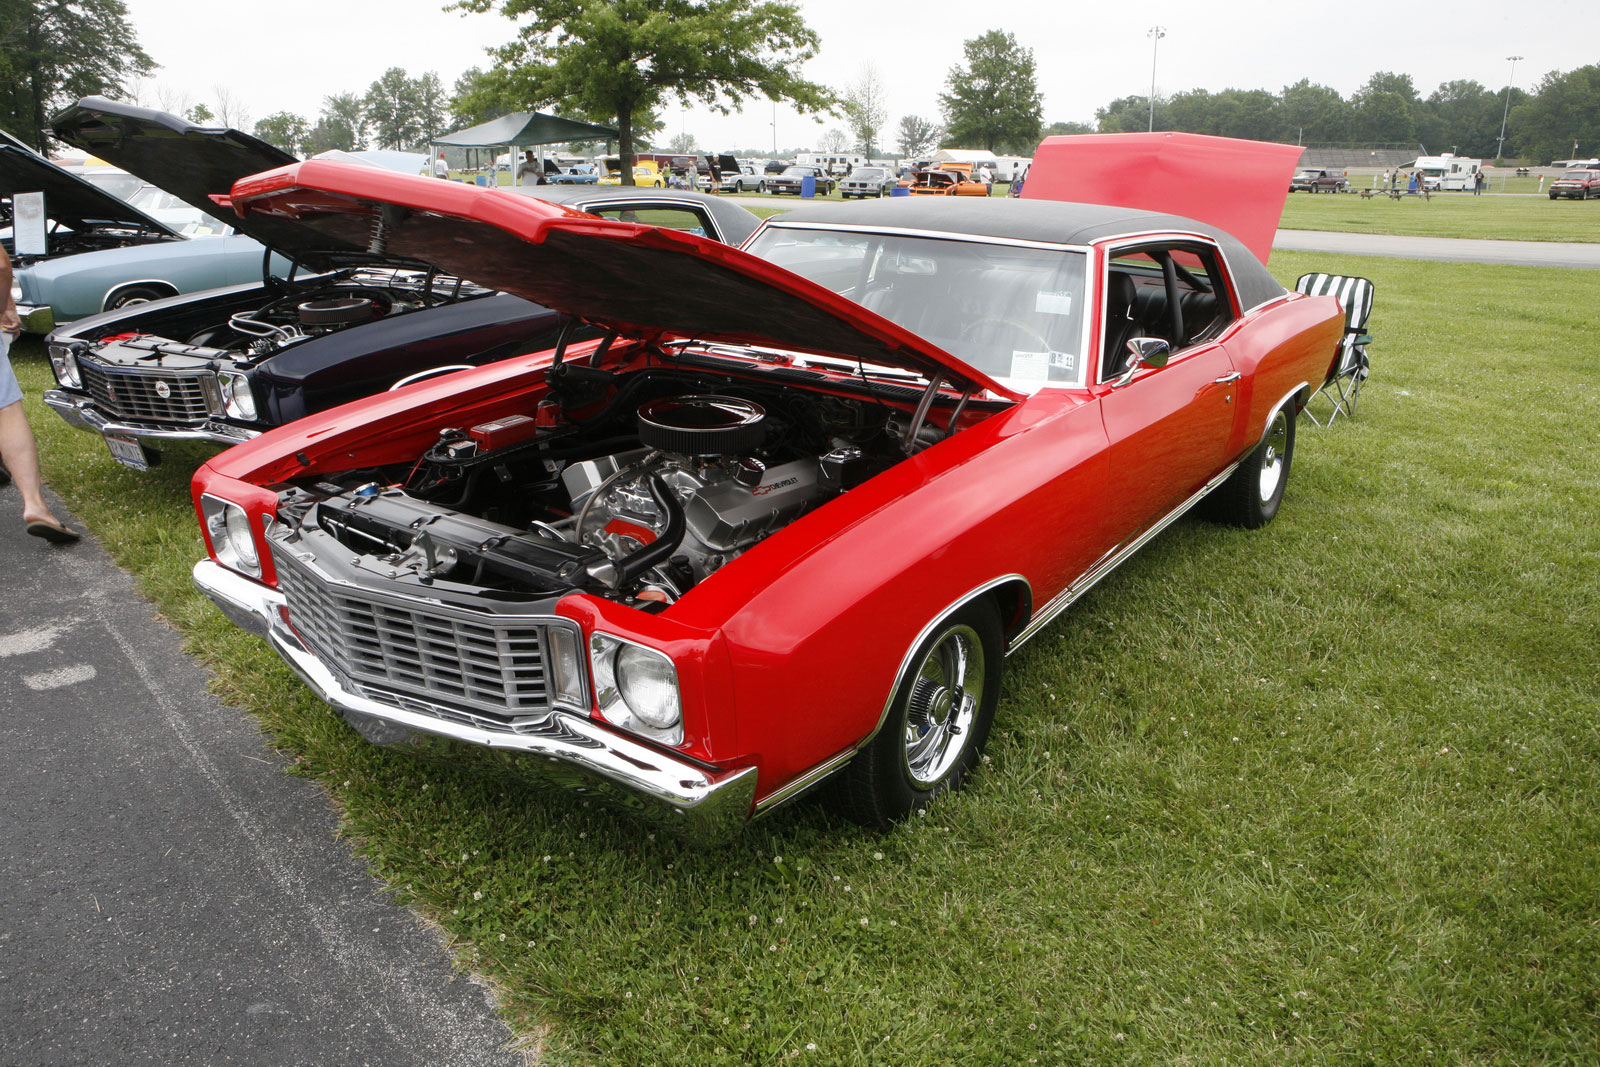 Sucp_1006w_17 Super_chevy_show_2010 Norwalk_ohio